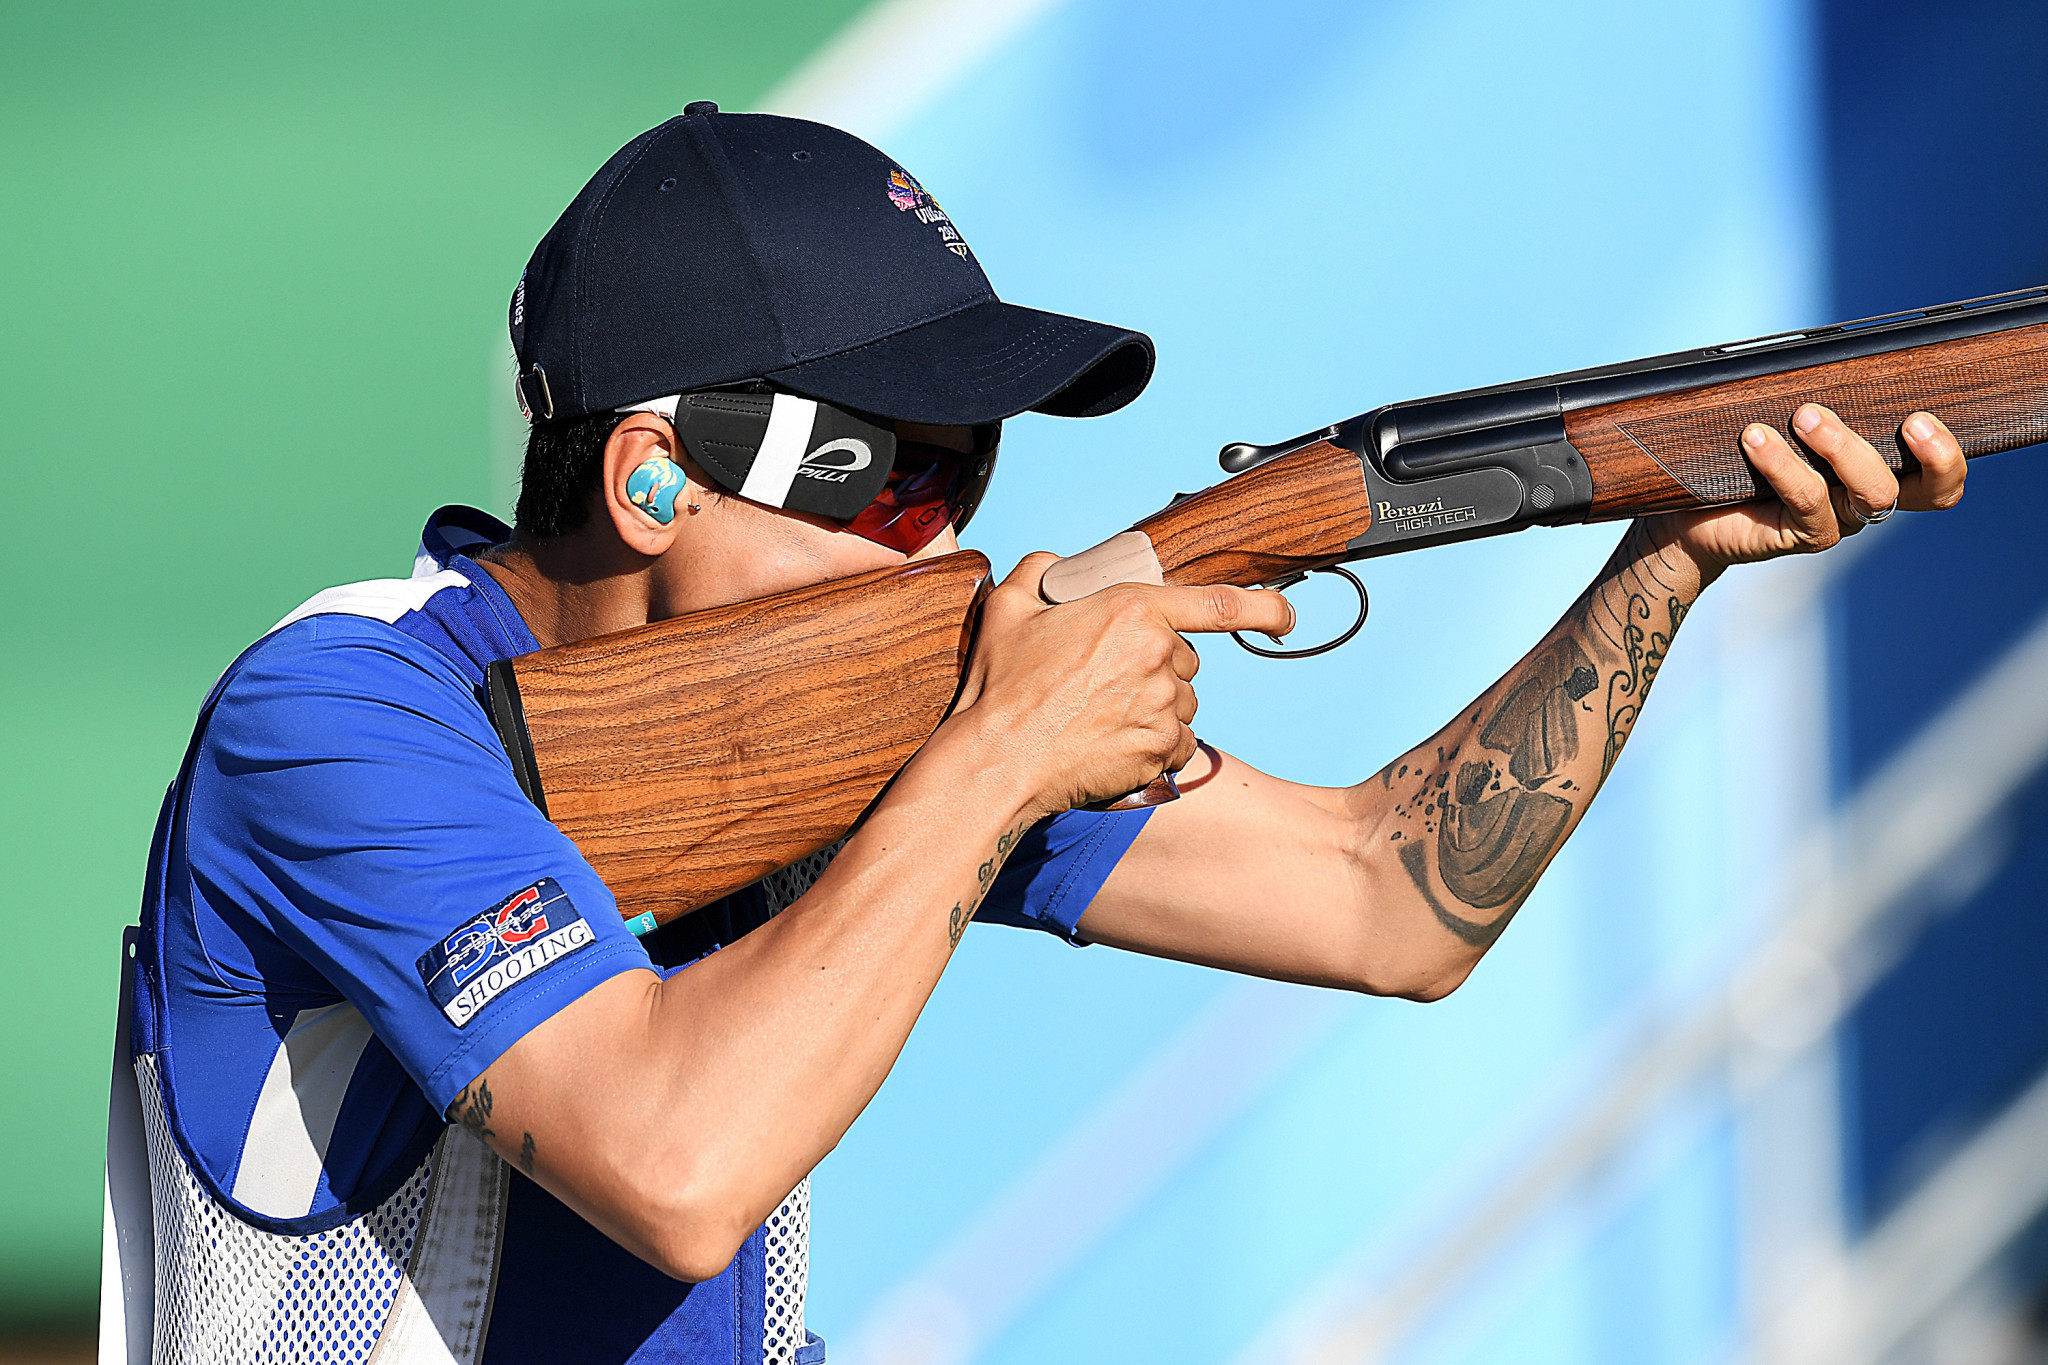 Commonwealth champion Eleftheriou leads women's skeet qualifying at ISSF Shotgun World Cup